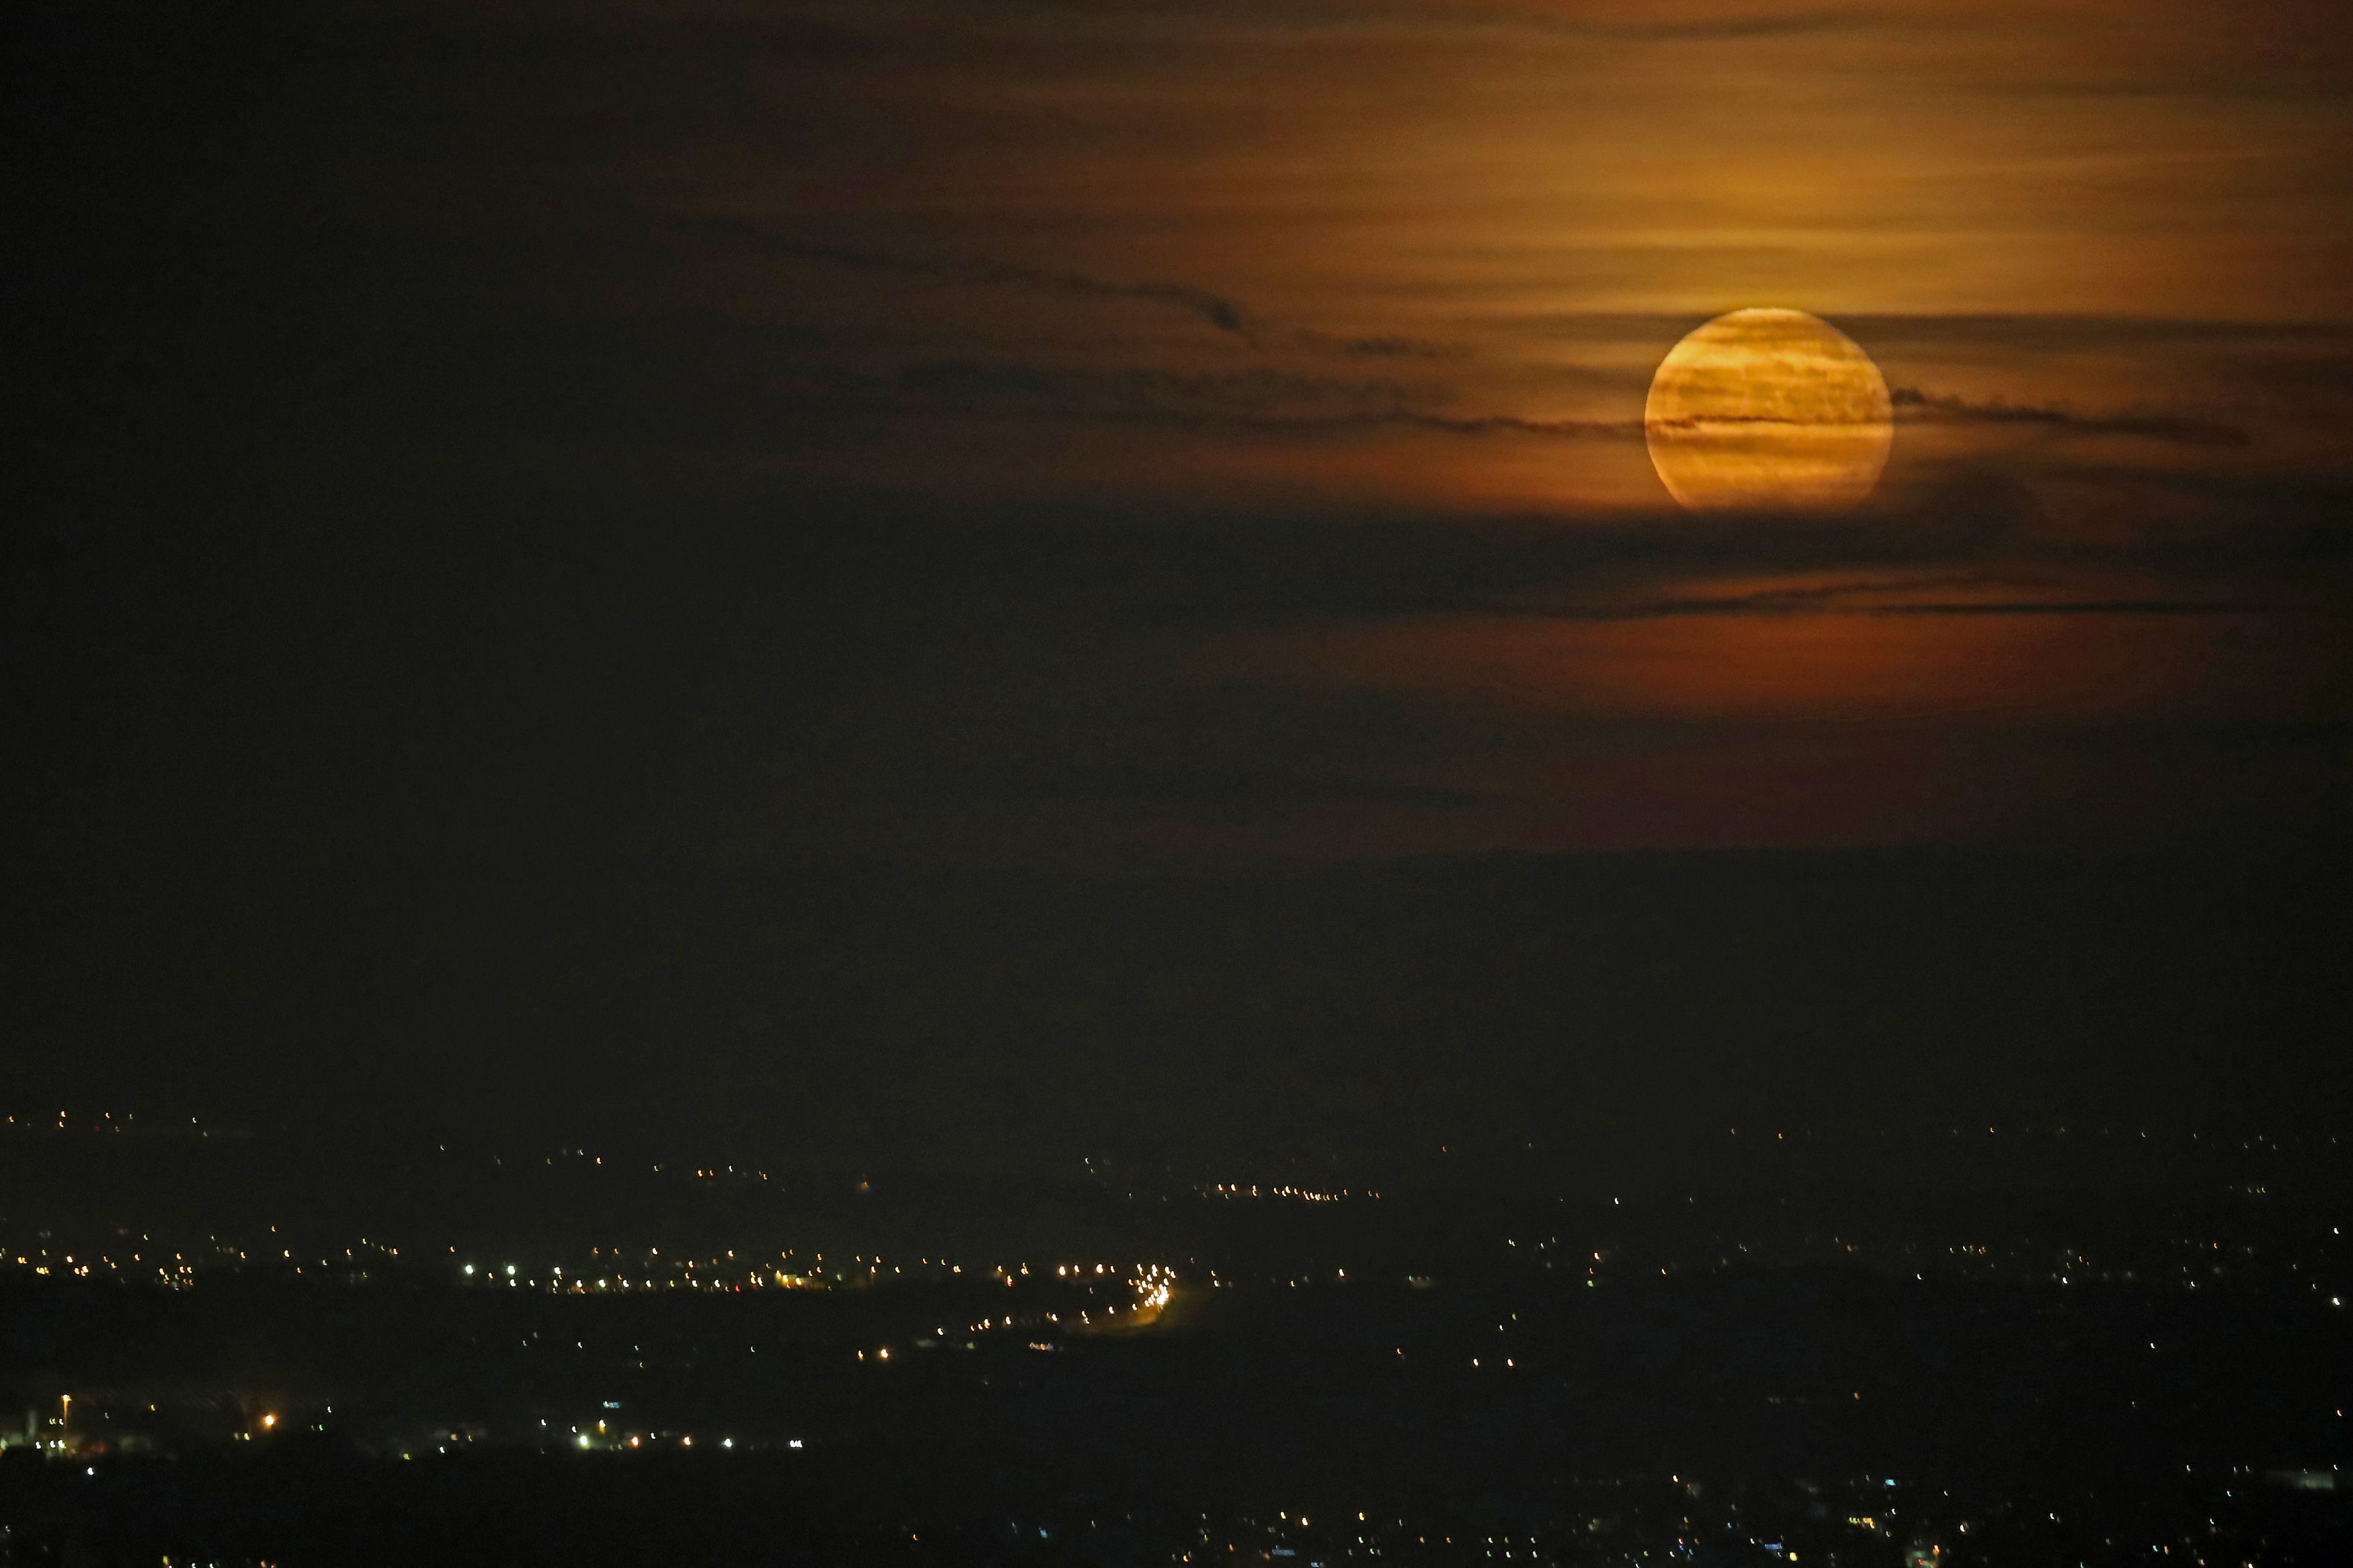 A supermoon in 2016 seen over Lancashire